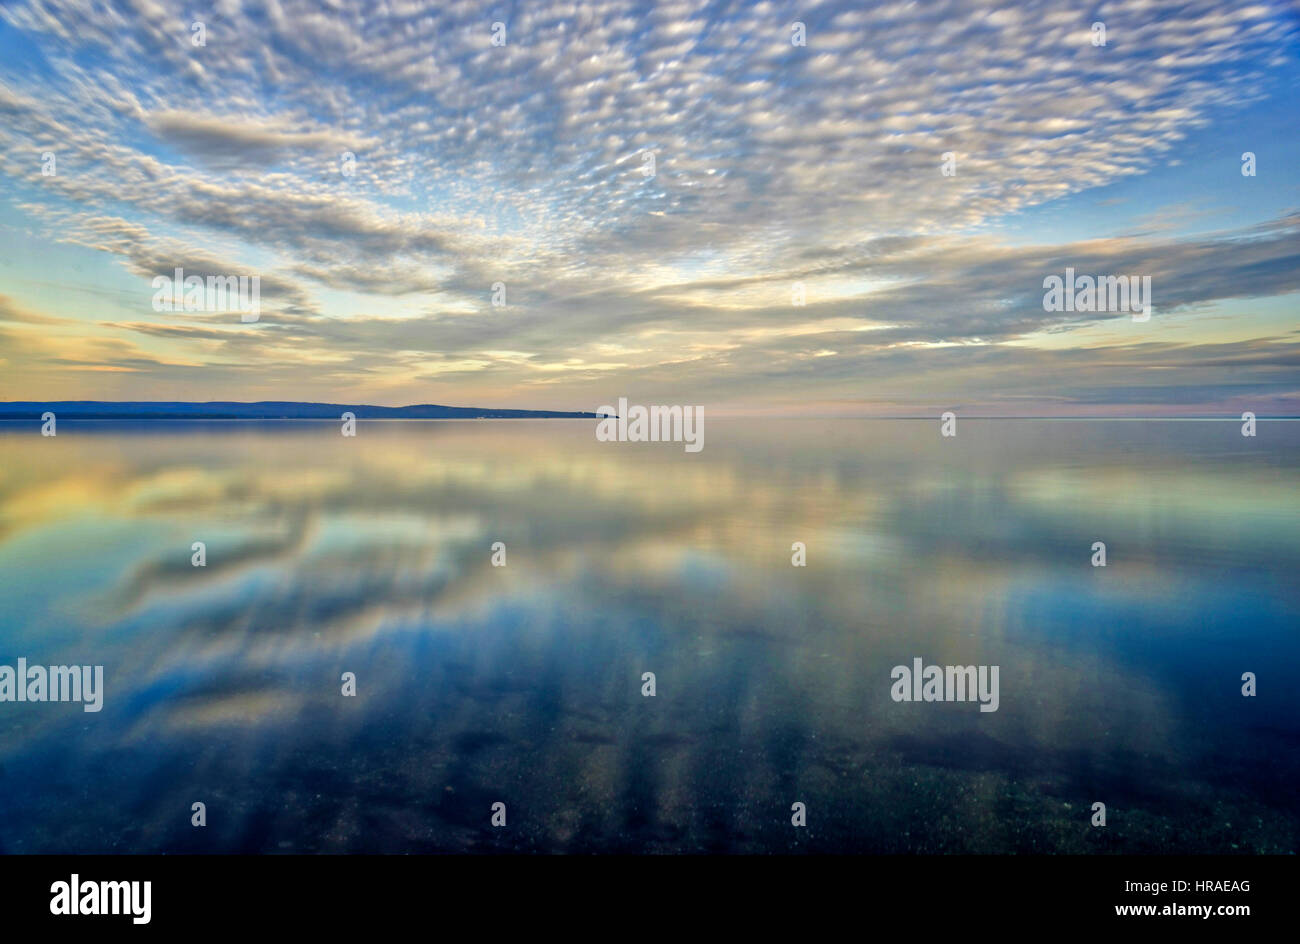 Gorgeous altocumulus clouds reflected in a nearly flat sea in Baie des Chaleurs, Gaspesie, Quebec Stock Photo